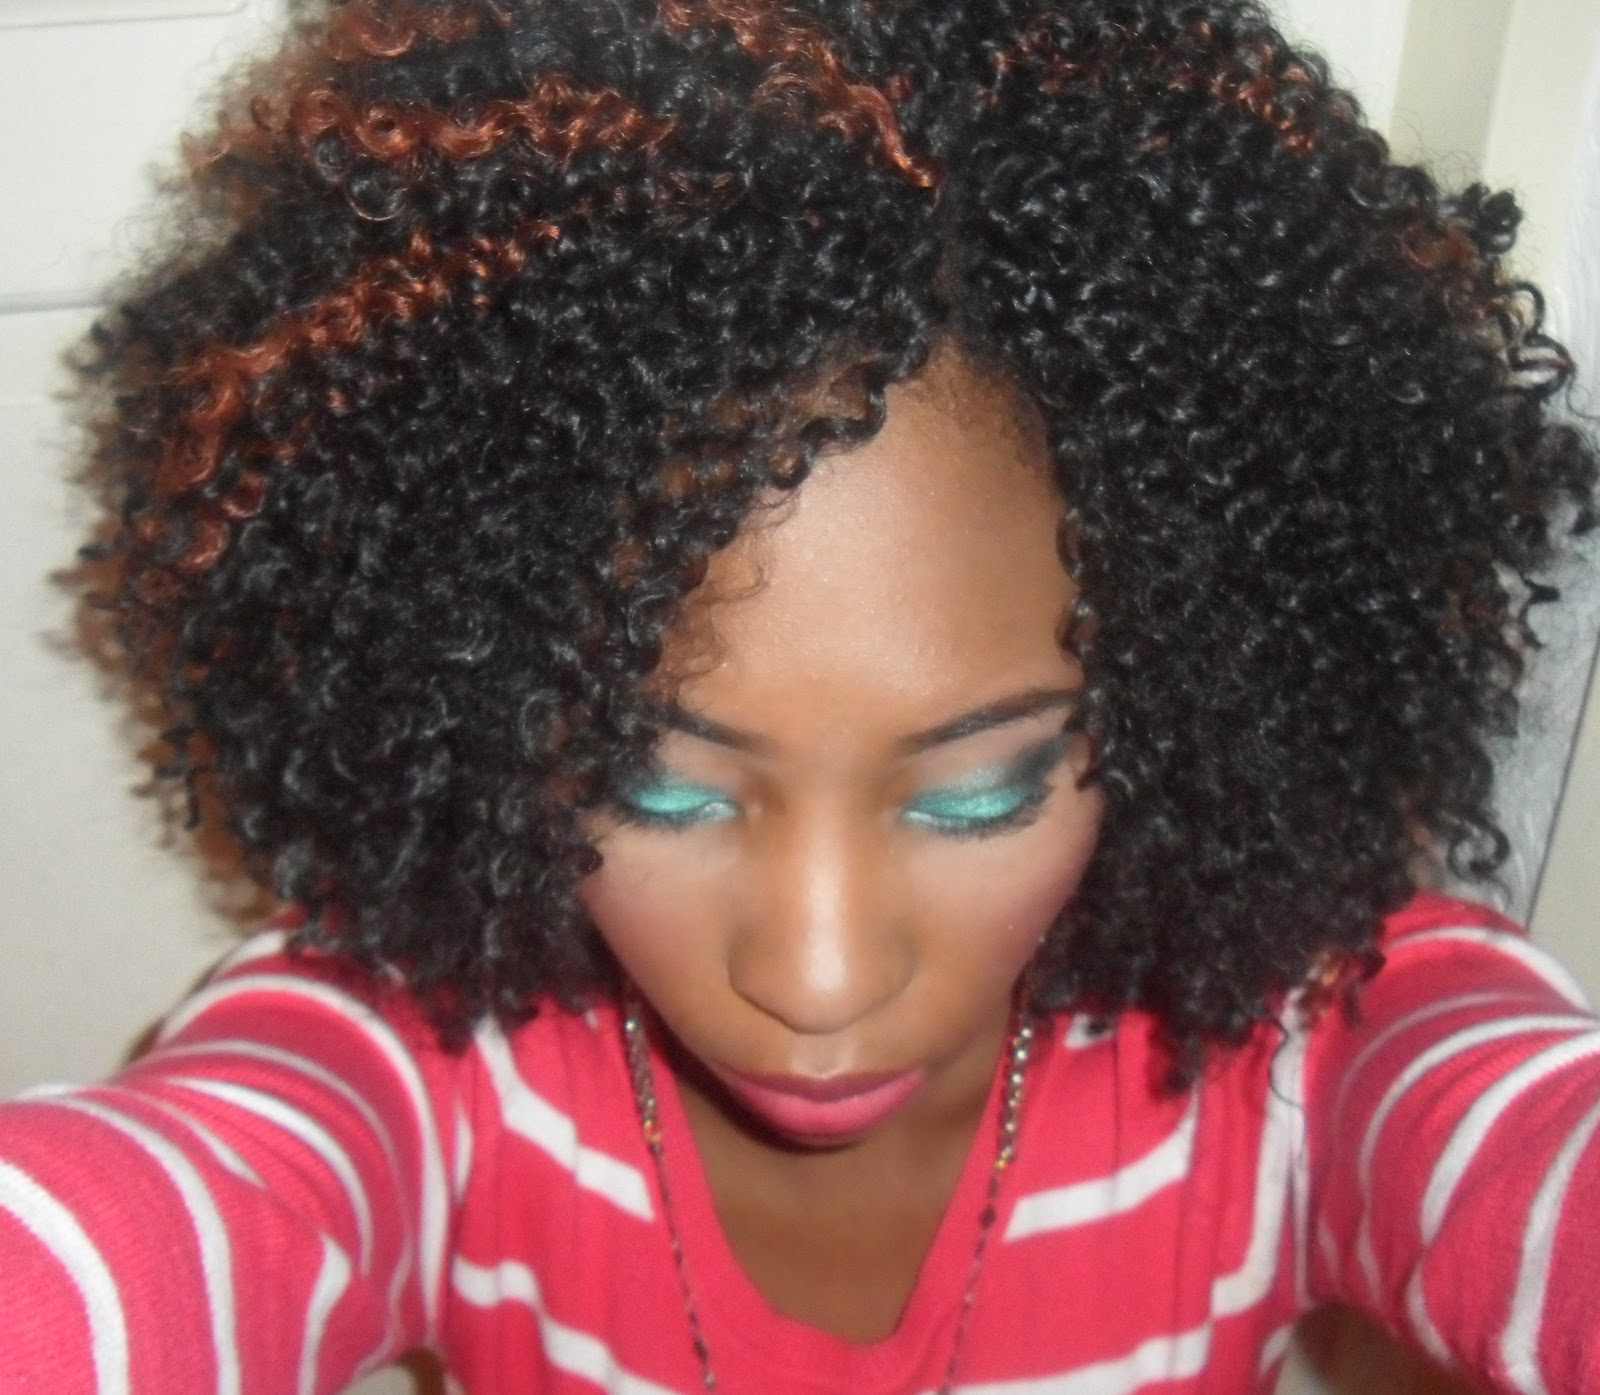 Crochet Hair Websites : If you are interested in learning how to do crochet braids, here is a ...